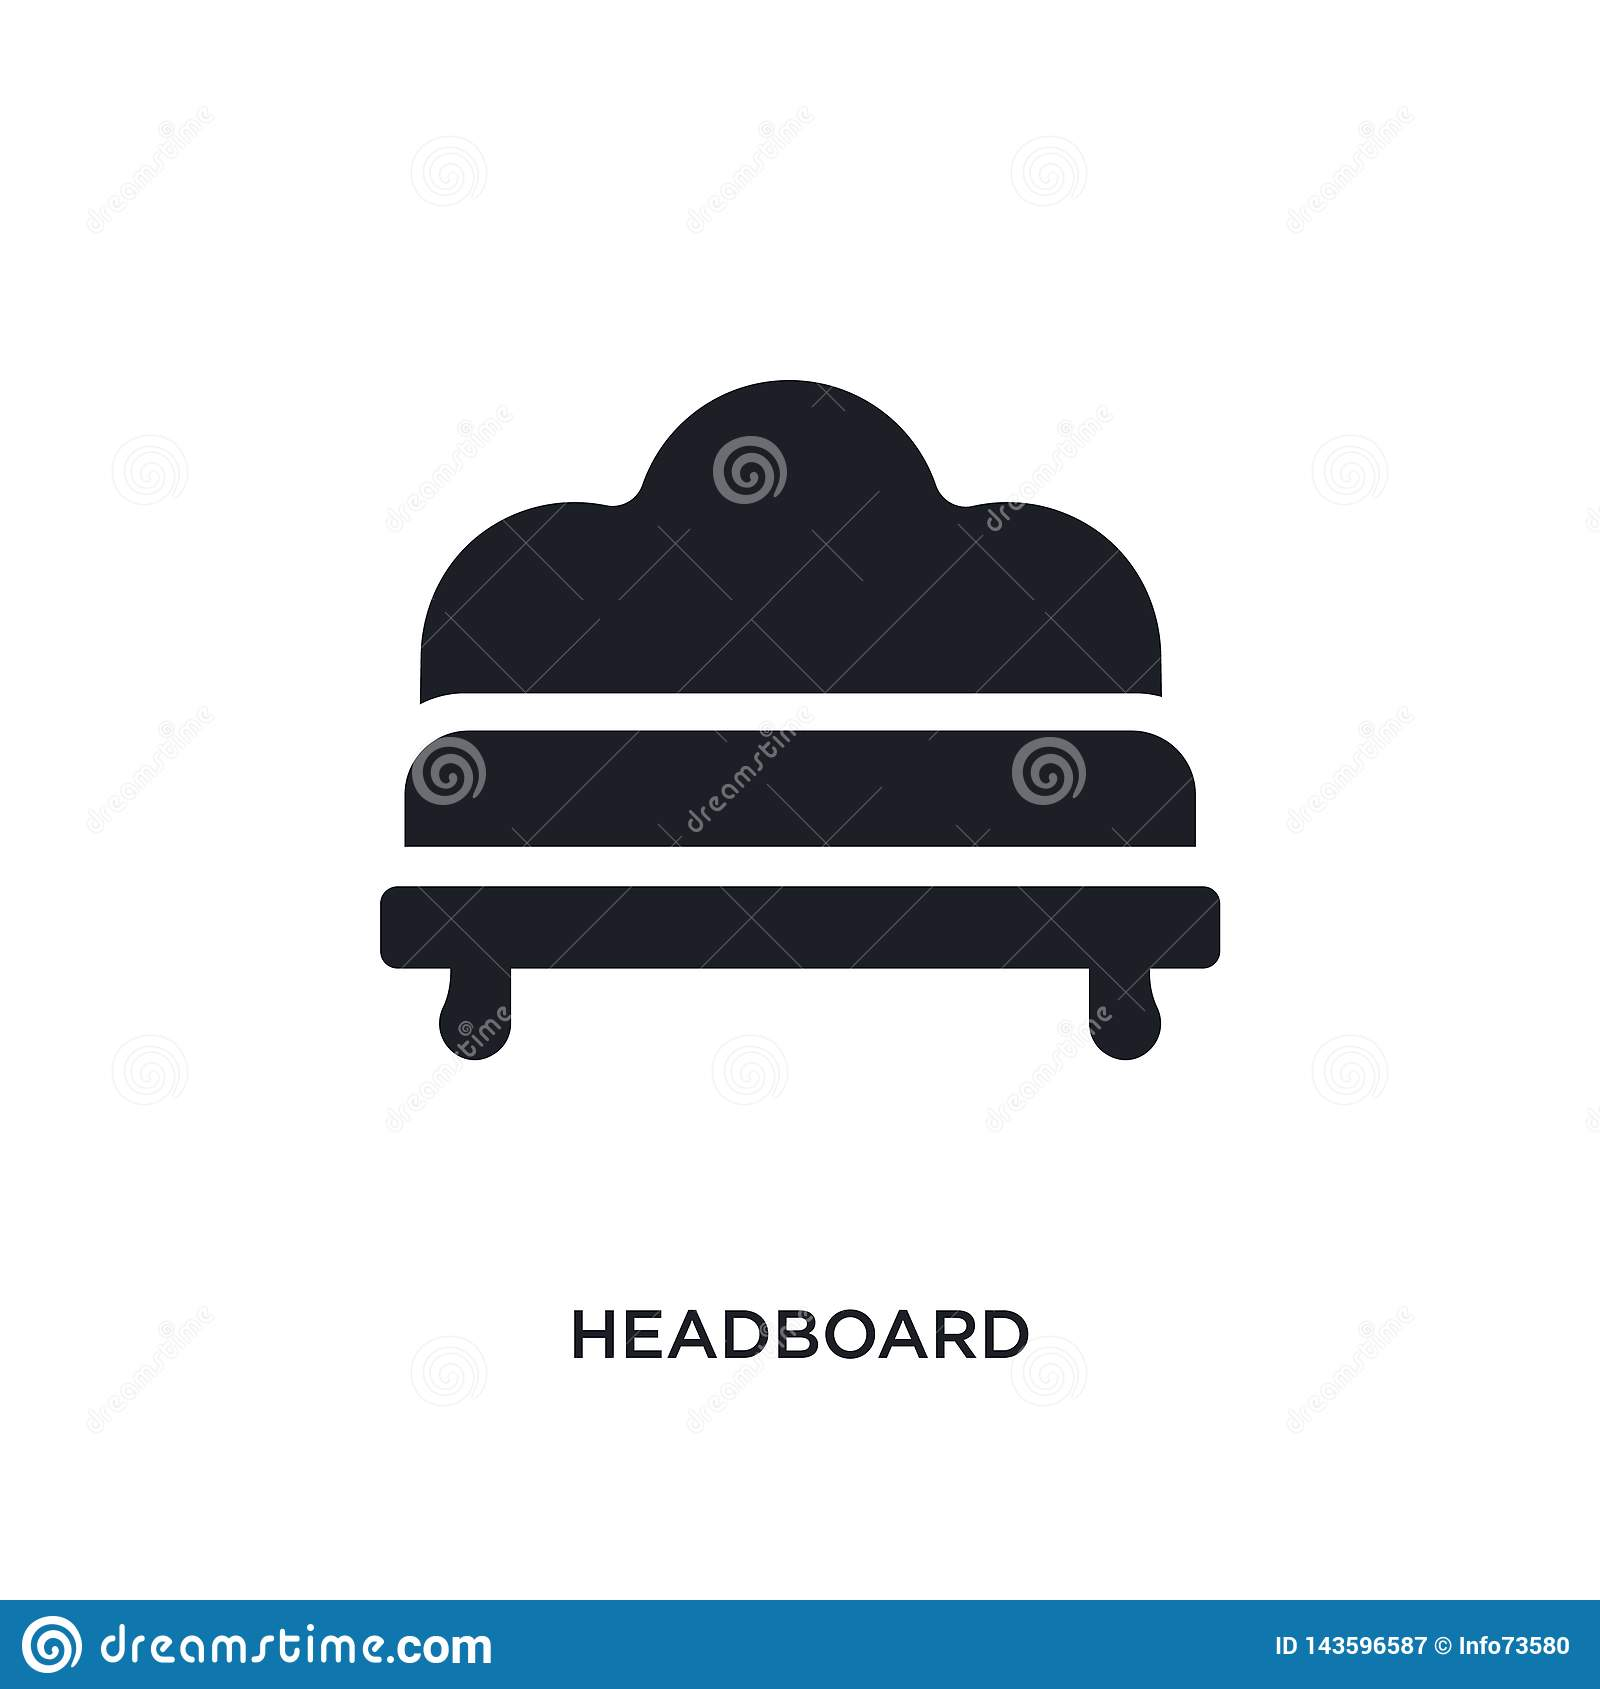 black headboard isolated vector icon. simple element illustration from furniture and household concept vector icons. headboard